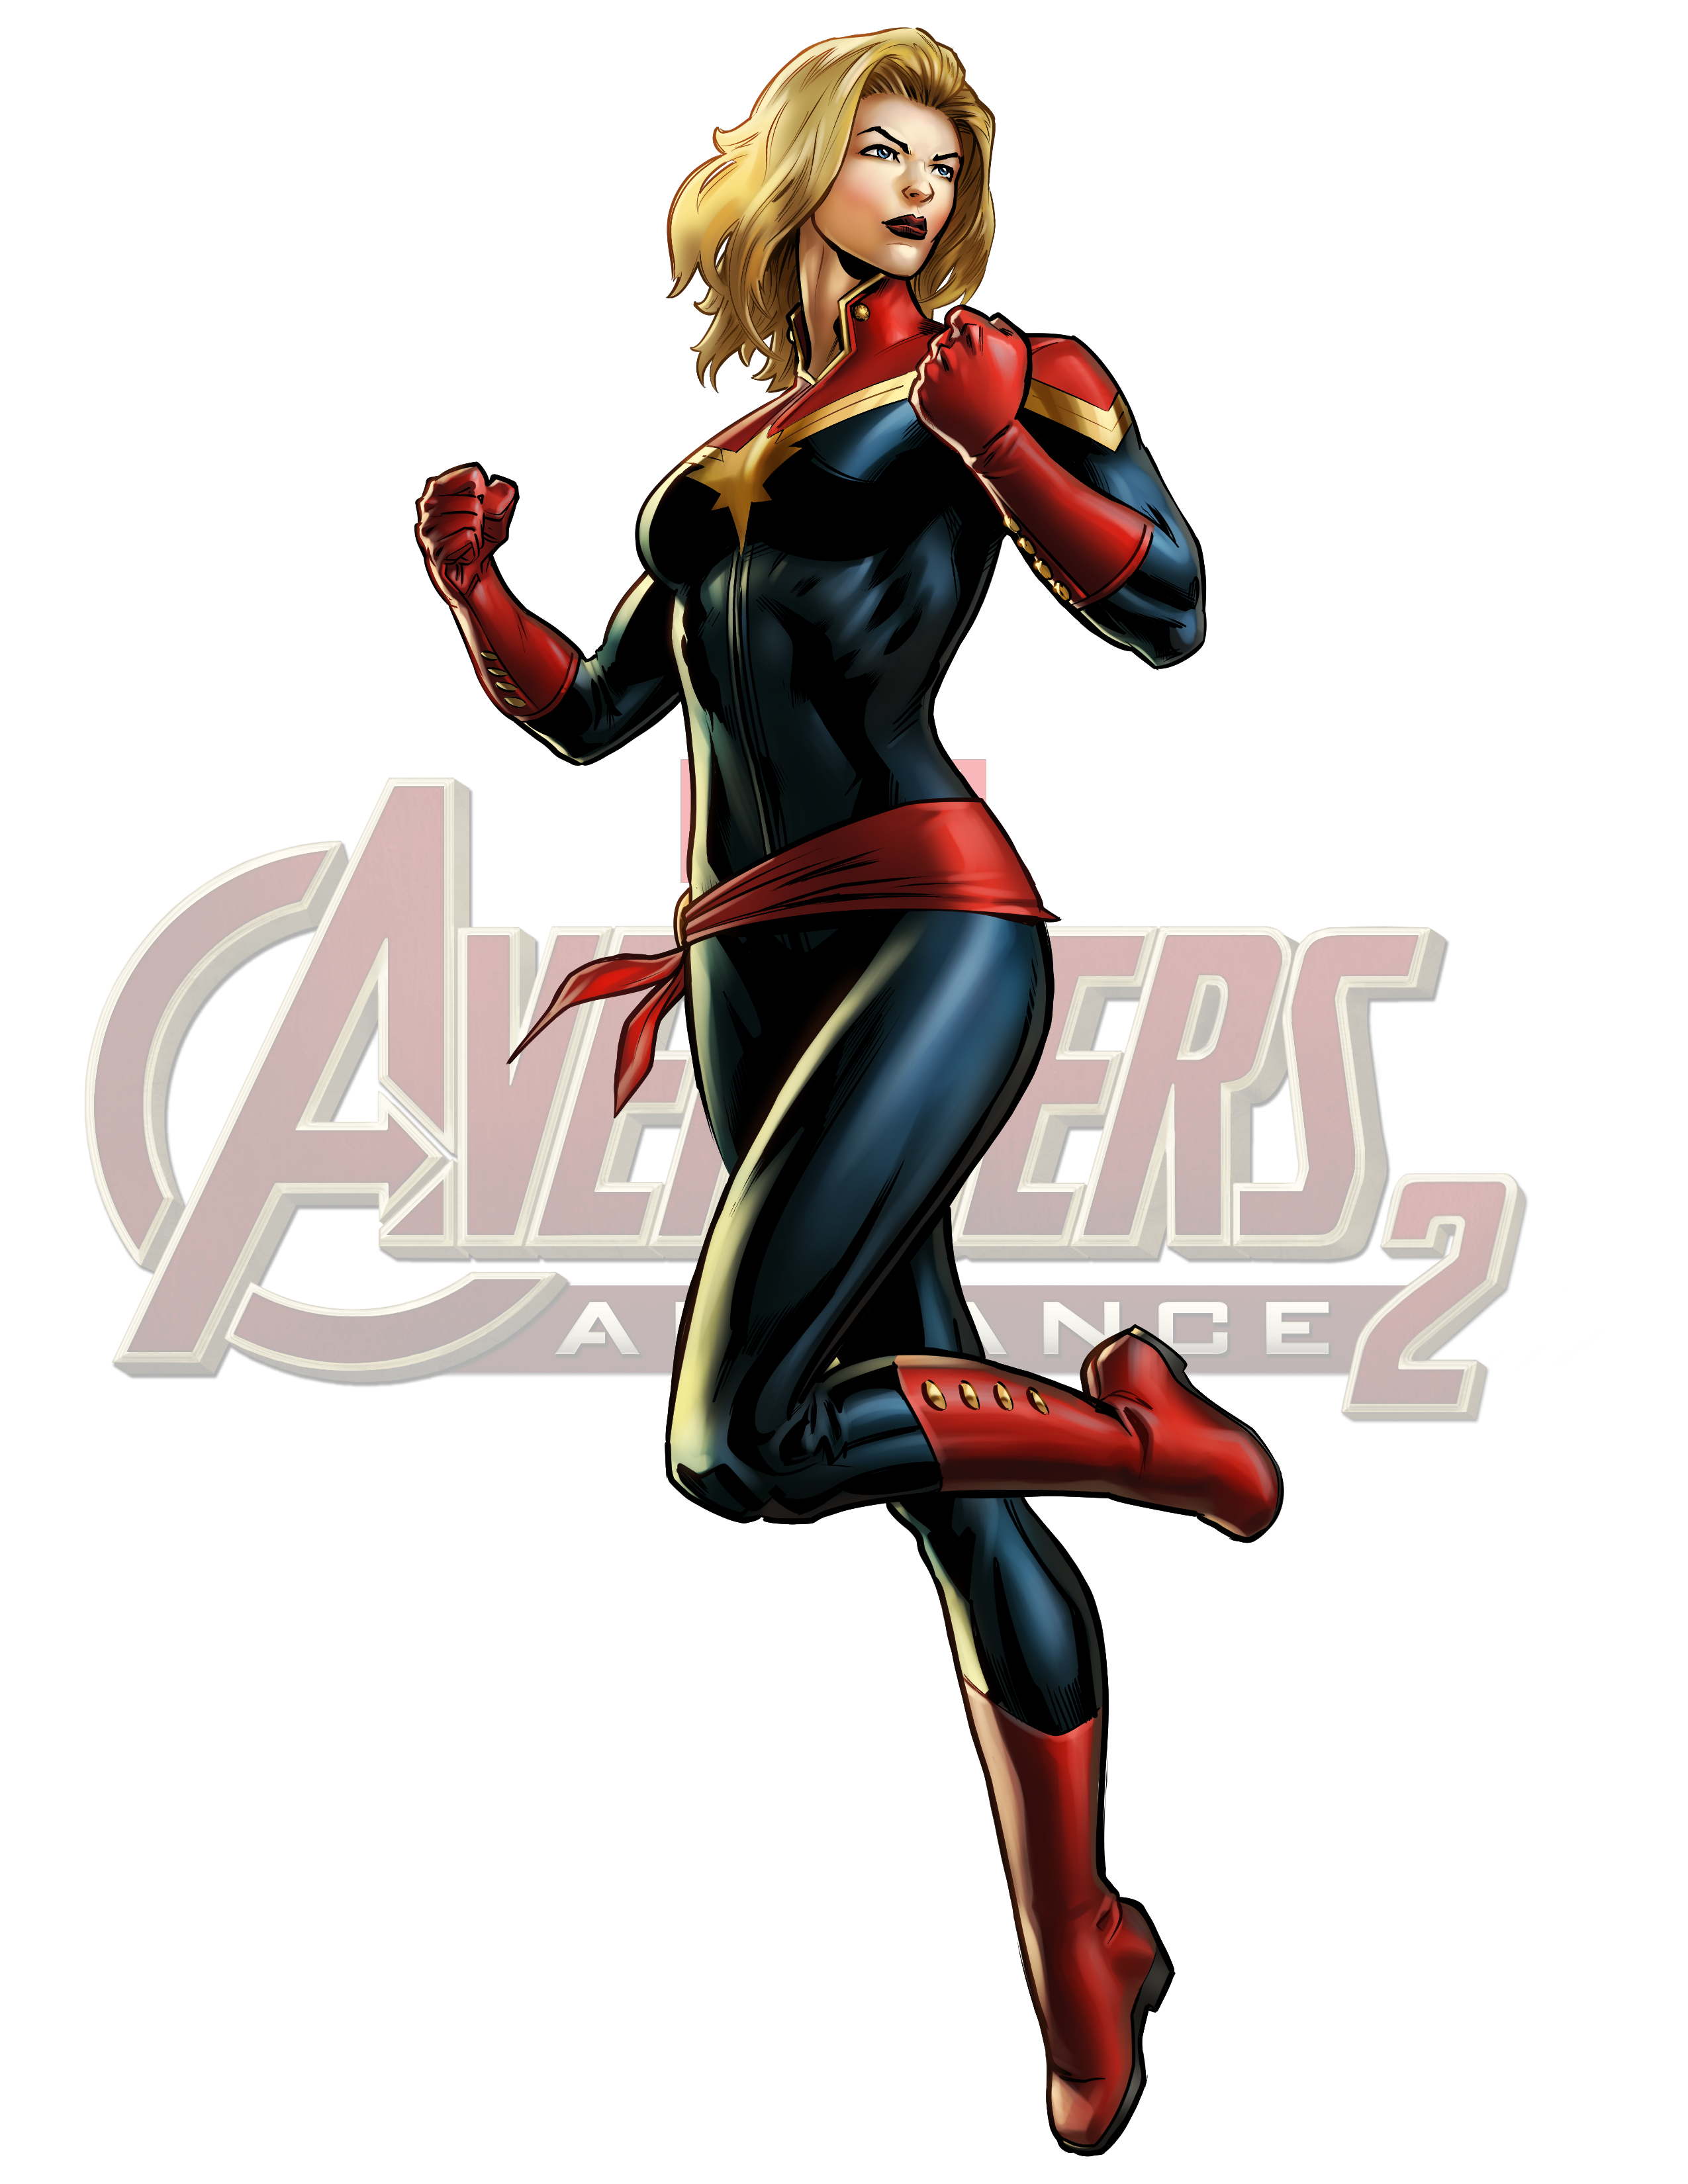 Image icon avengers alliance. Captain marvel png vector transparent